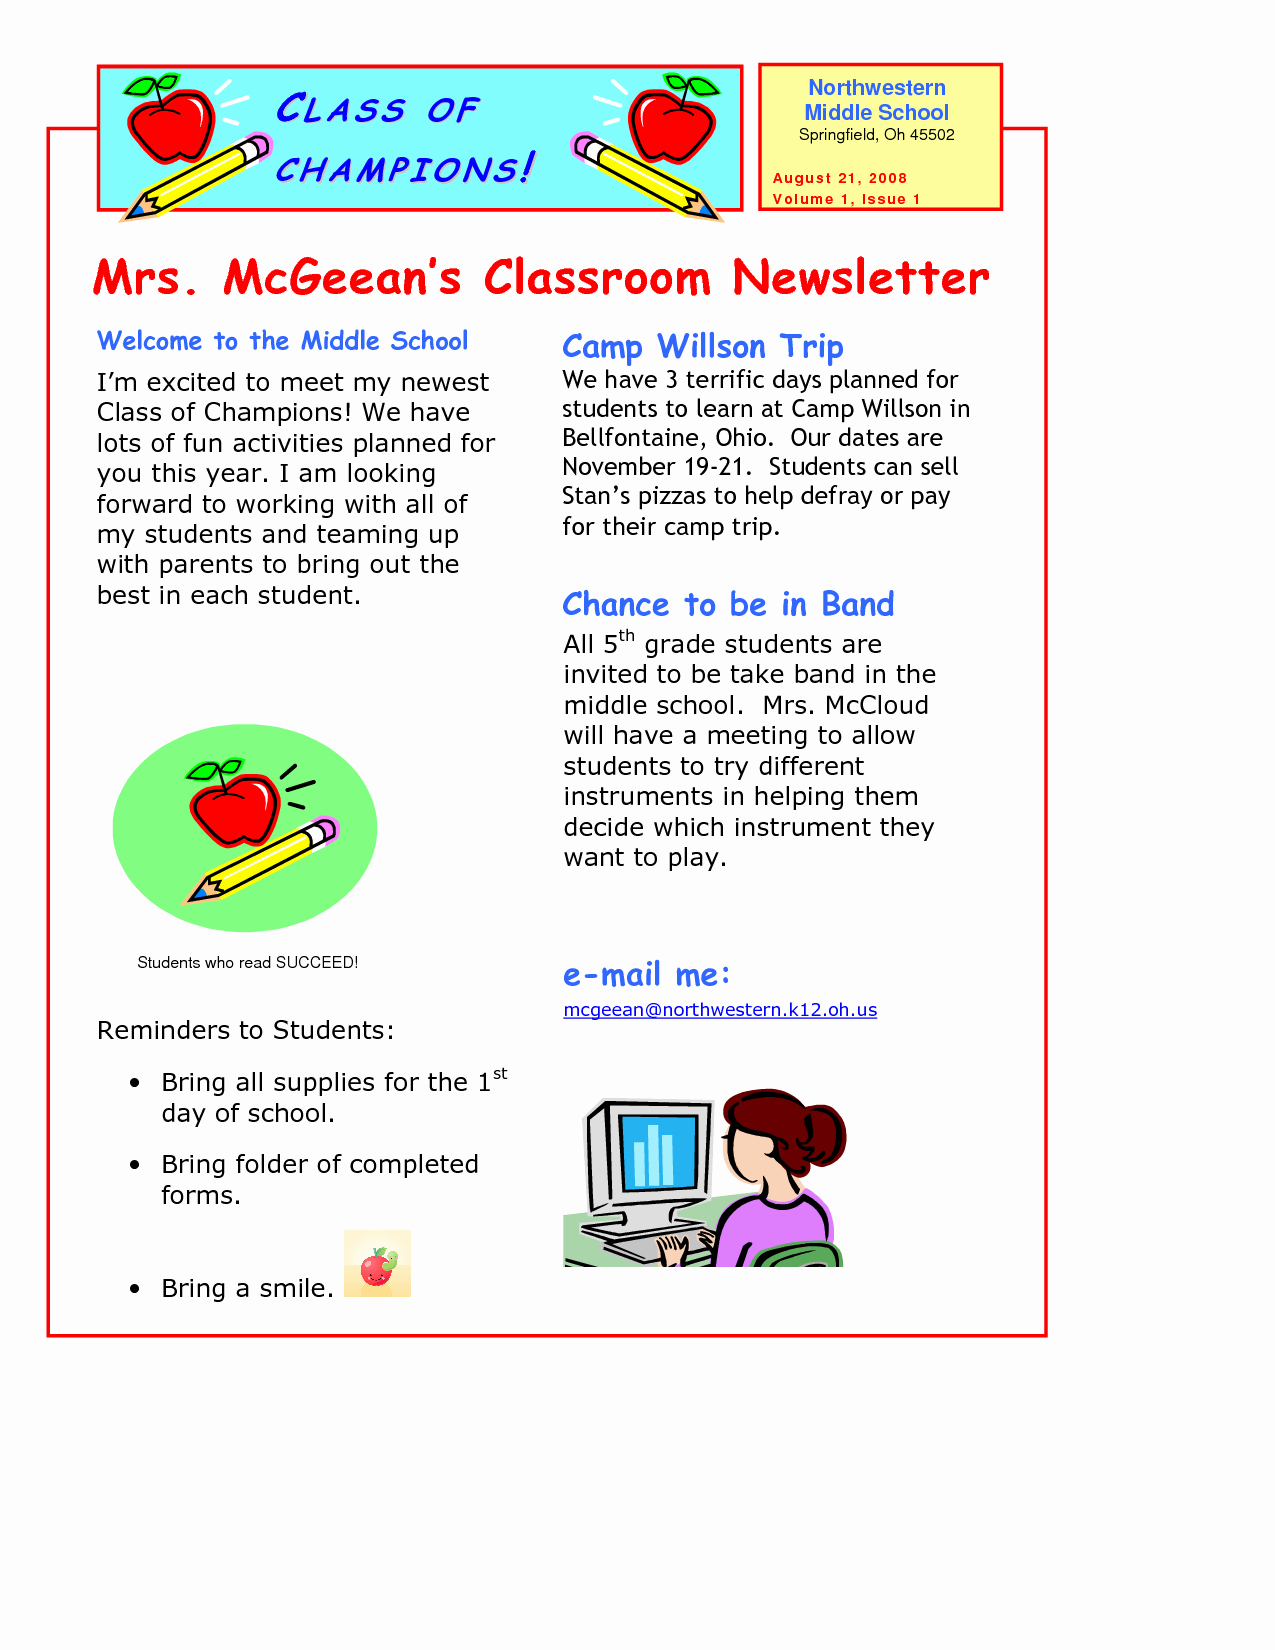 Newsletter for Parents From Teachers Lovely Classroom Newsletter Template